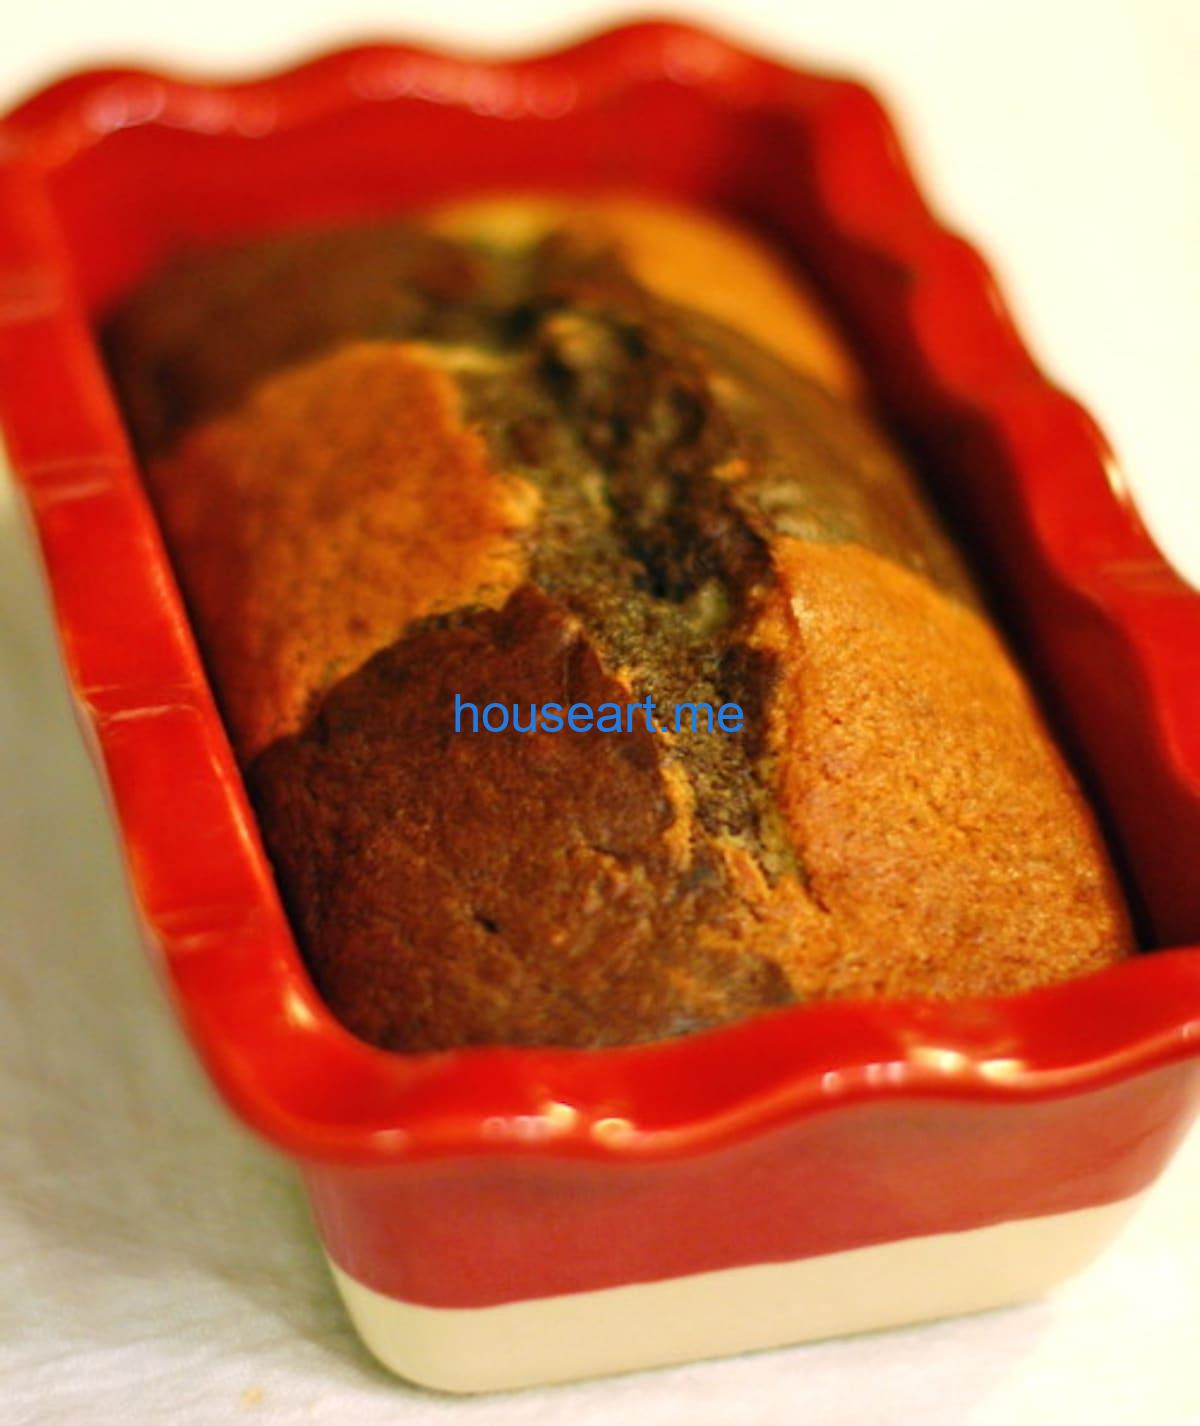 Loaf of chocolate checkered banana bread in a red baking dish.